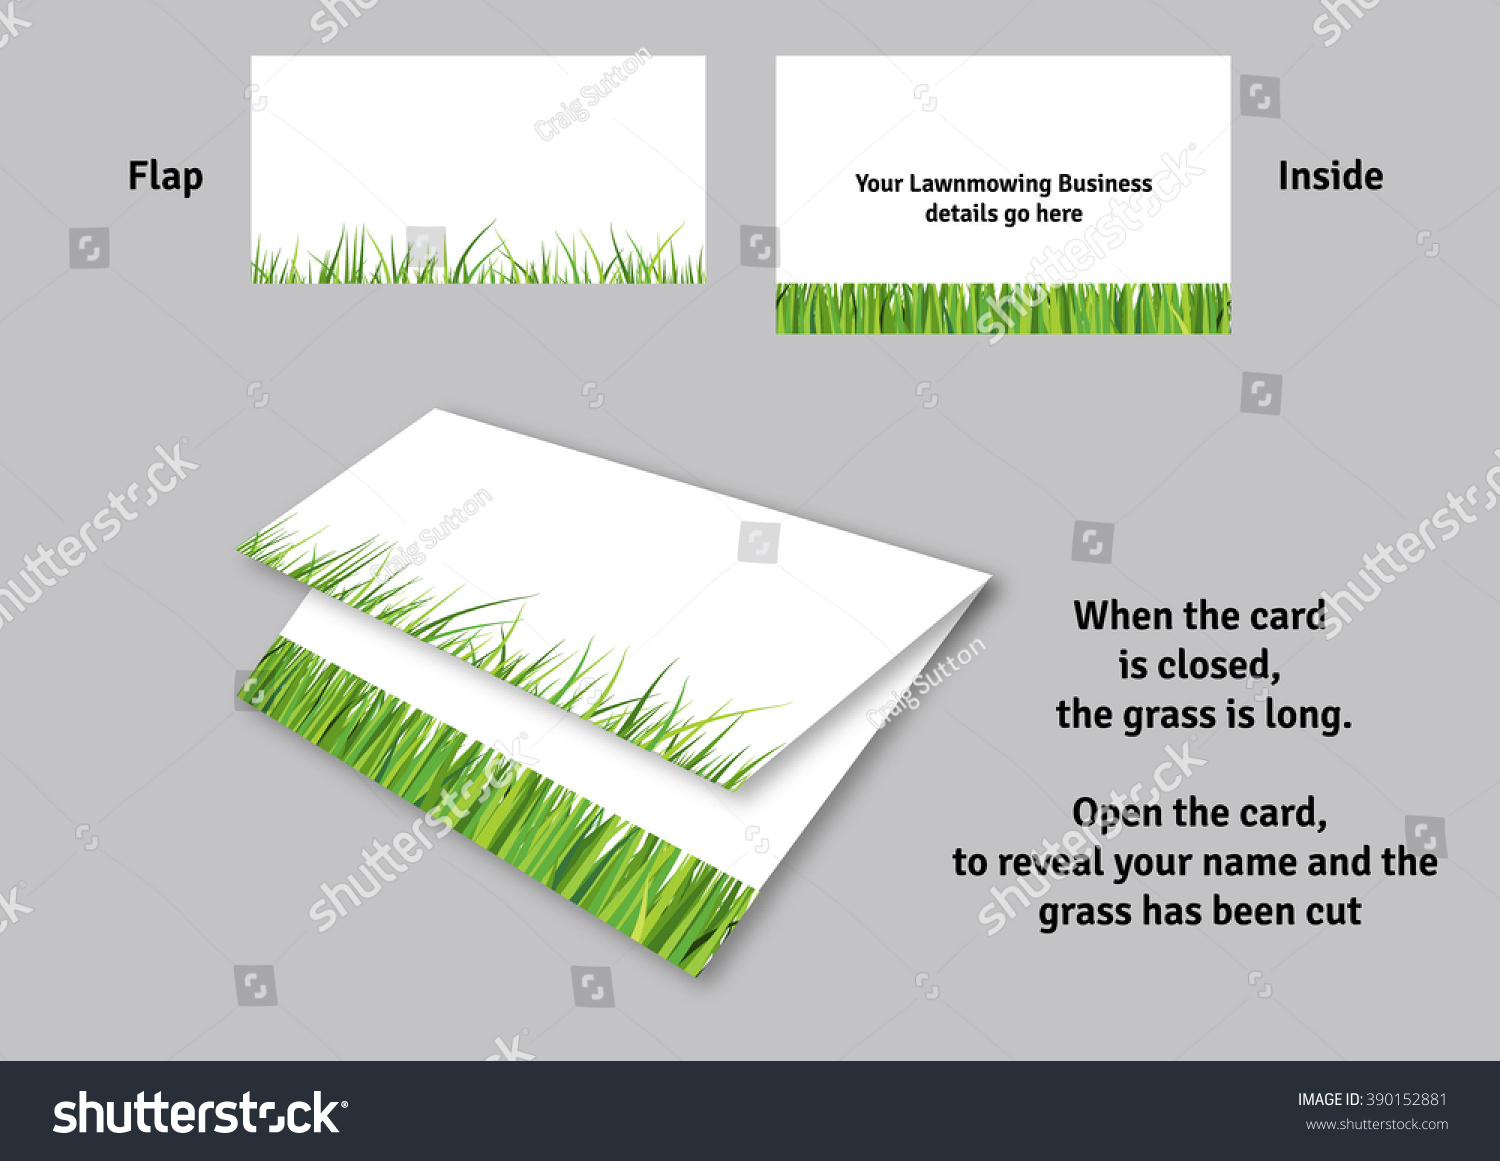 lawn mowing business card template stock vector  lawn mowing business card template